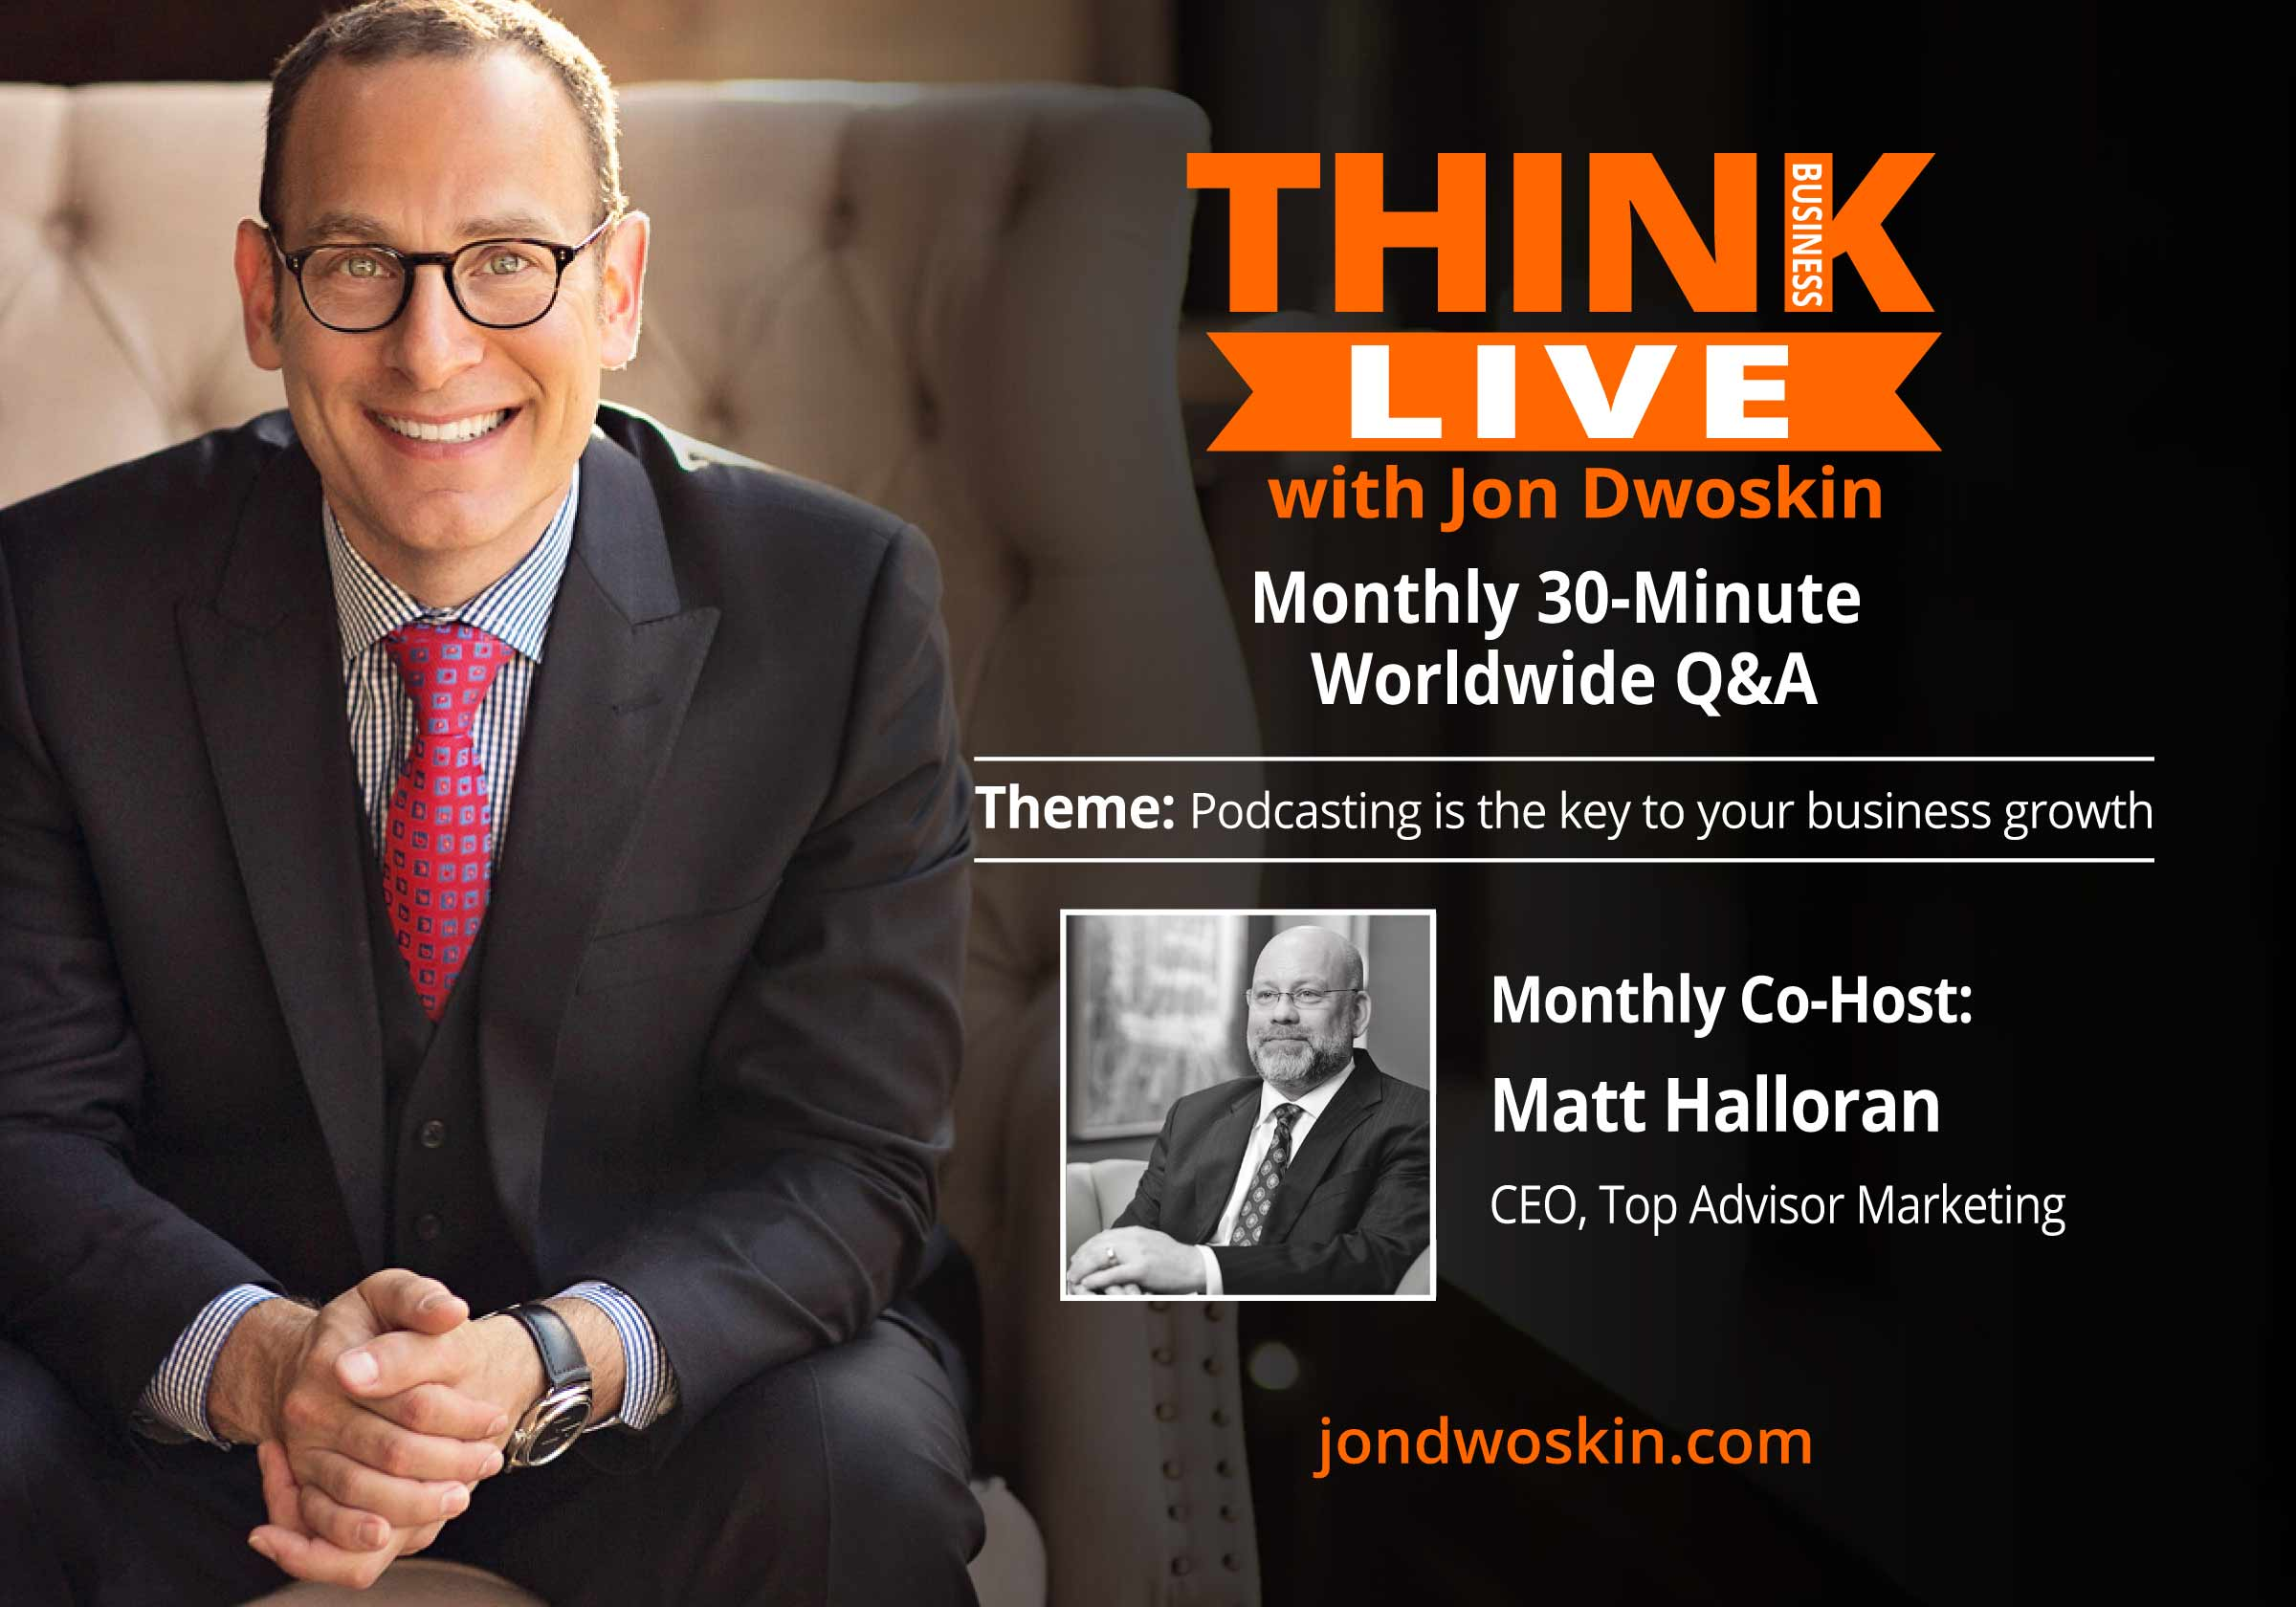 THINK Business LIVE with Co-Host: Matt Halloran, CEO, Top Advisor Marketing